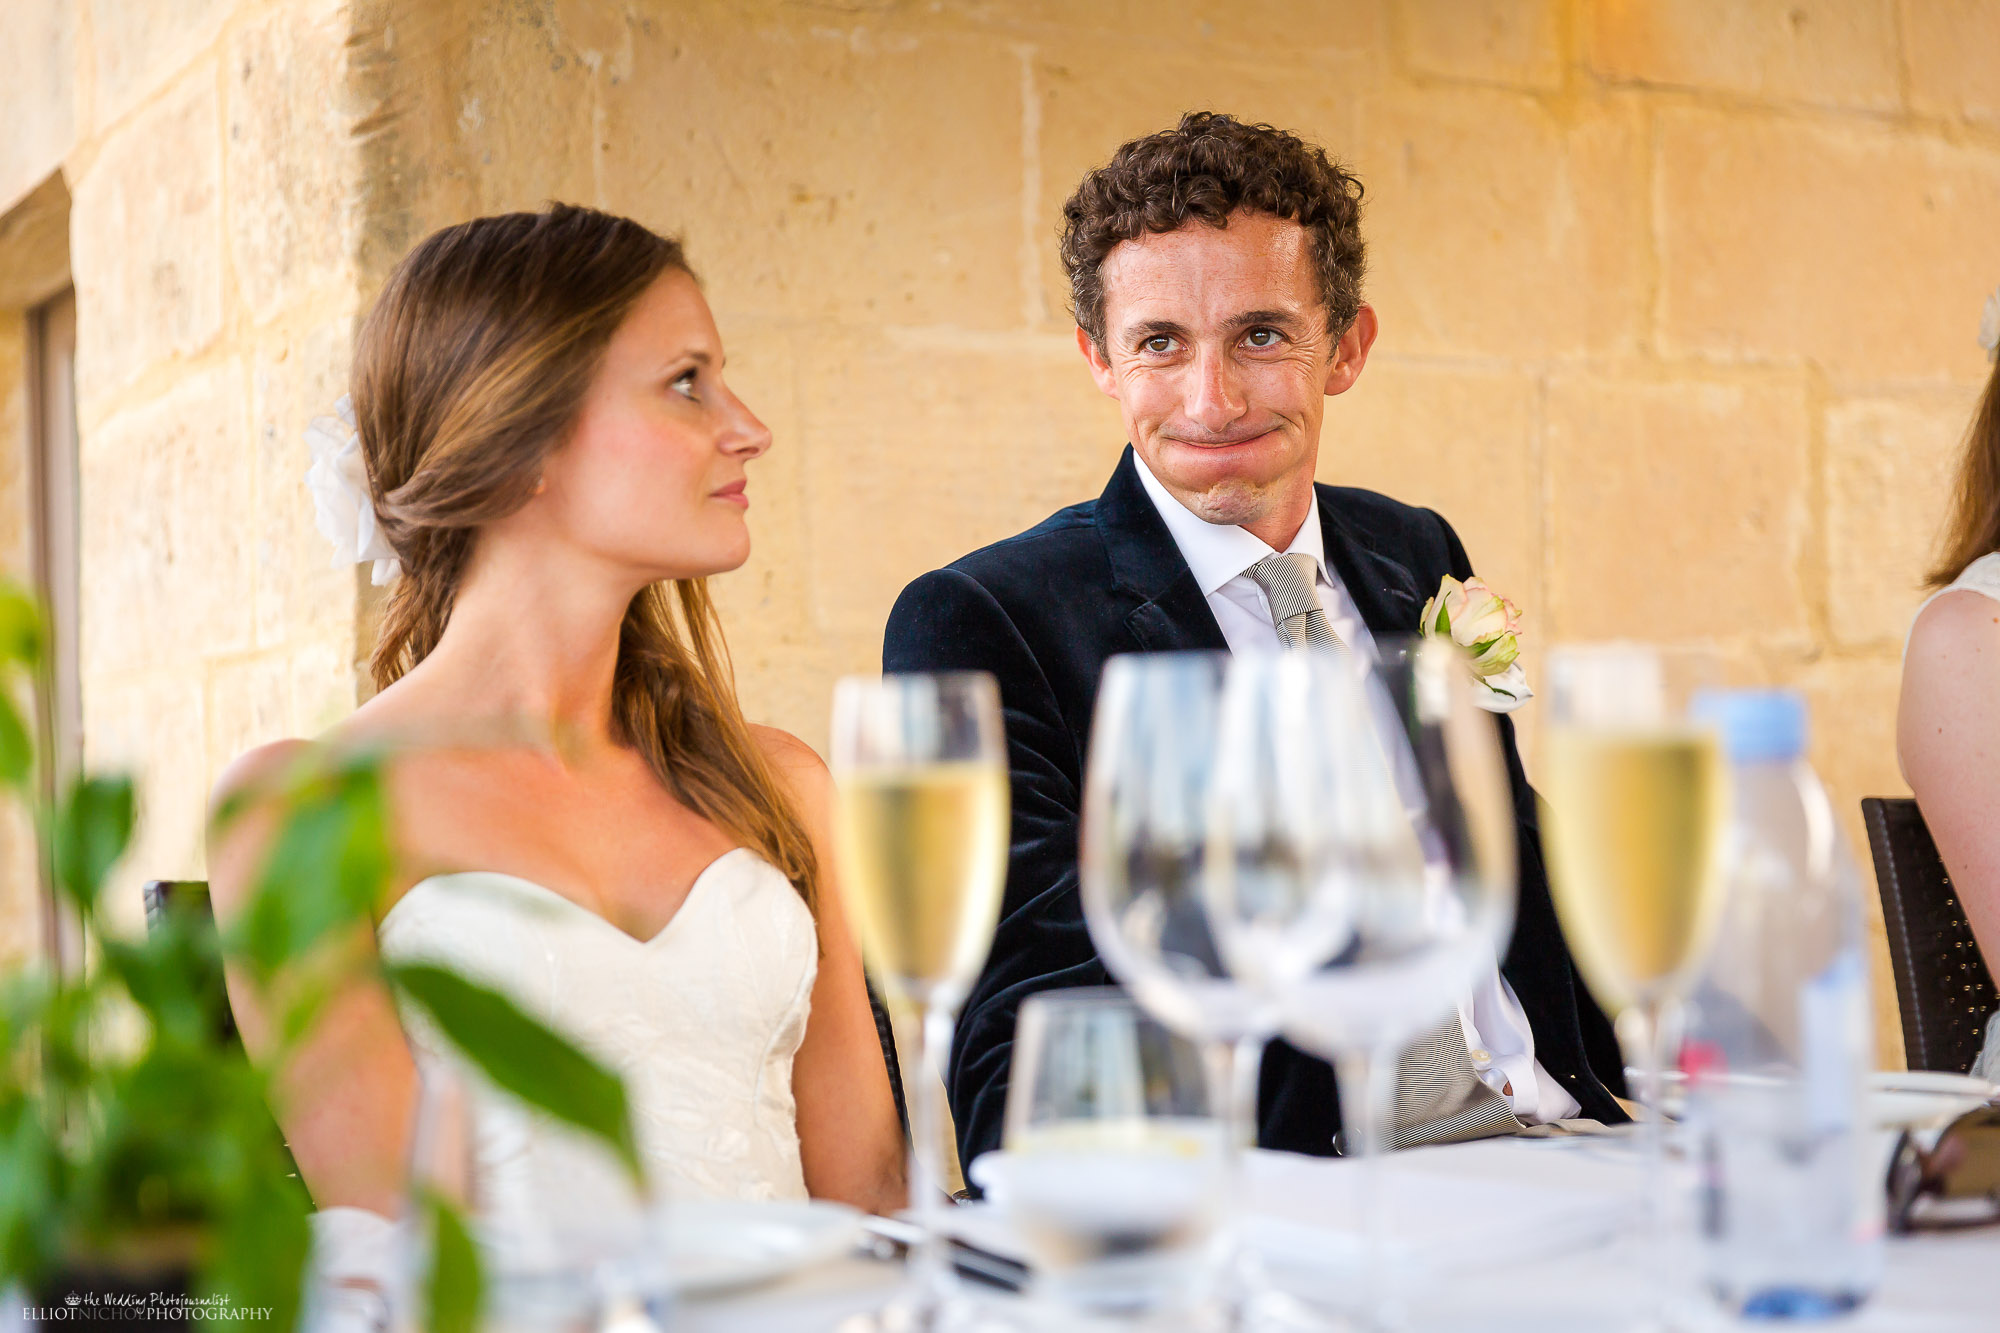 groom-funny-face-wedding-photography-North-East-photography-Candid